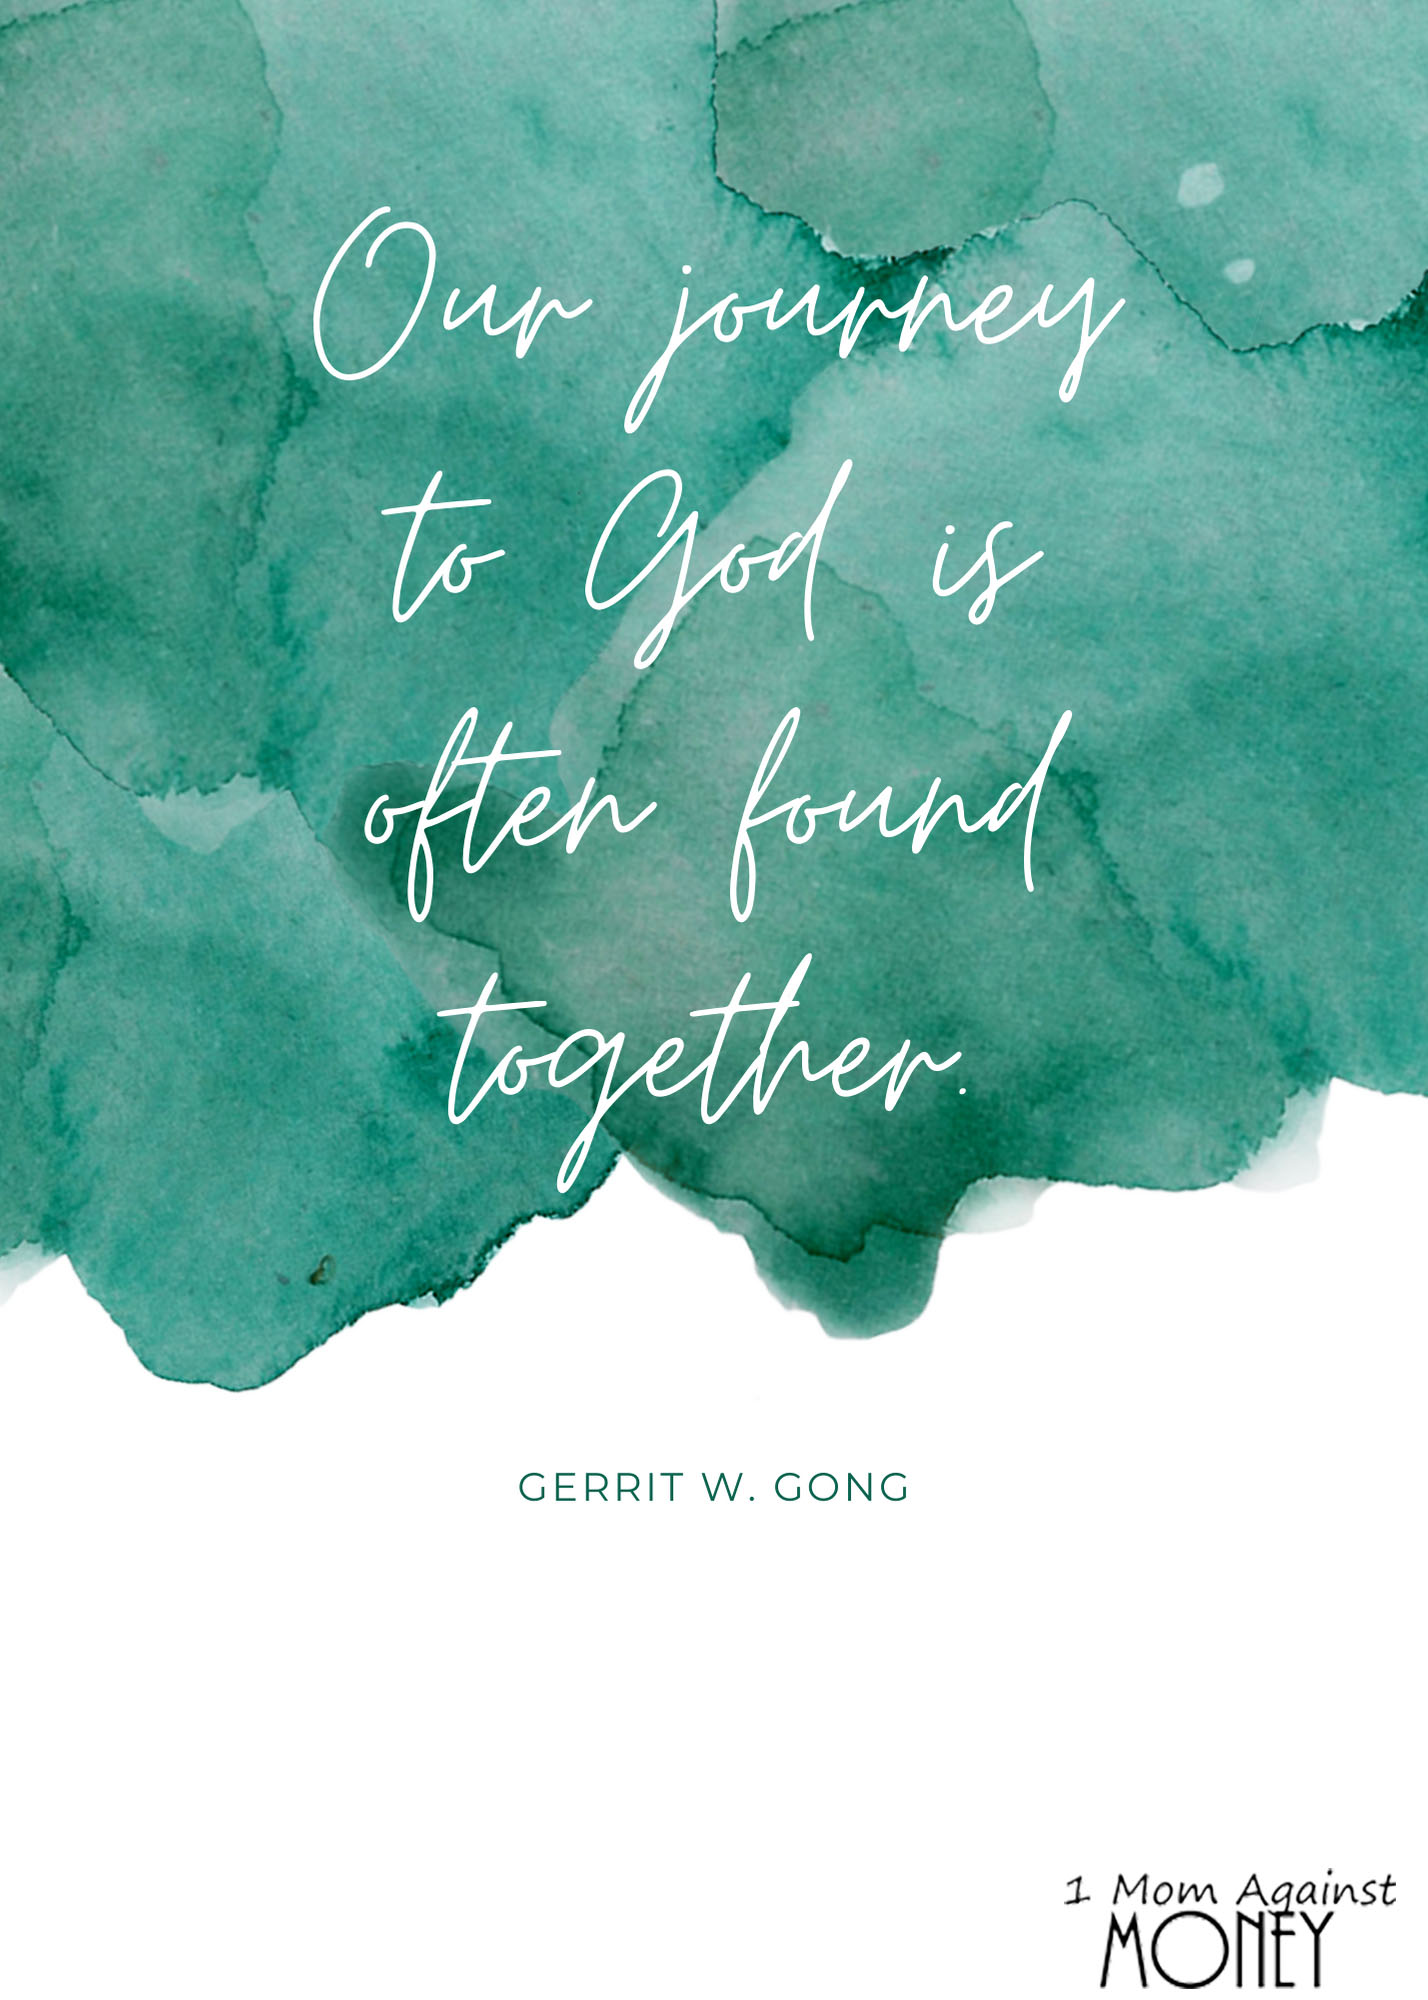 Journey Together General Conference Quote